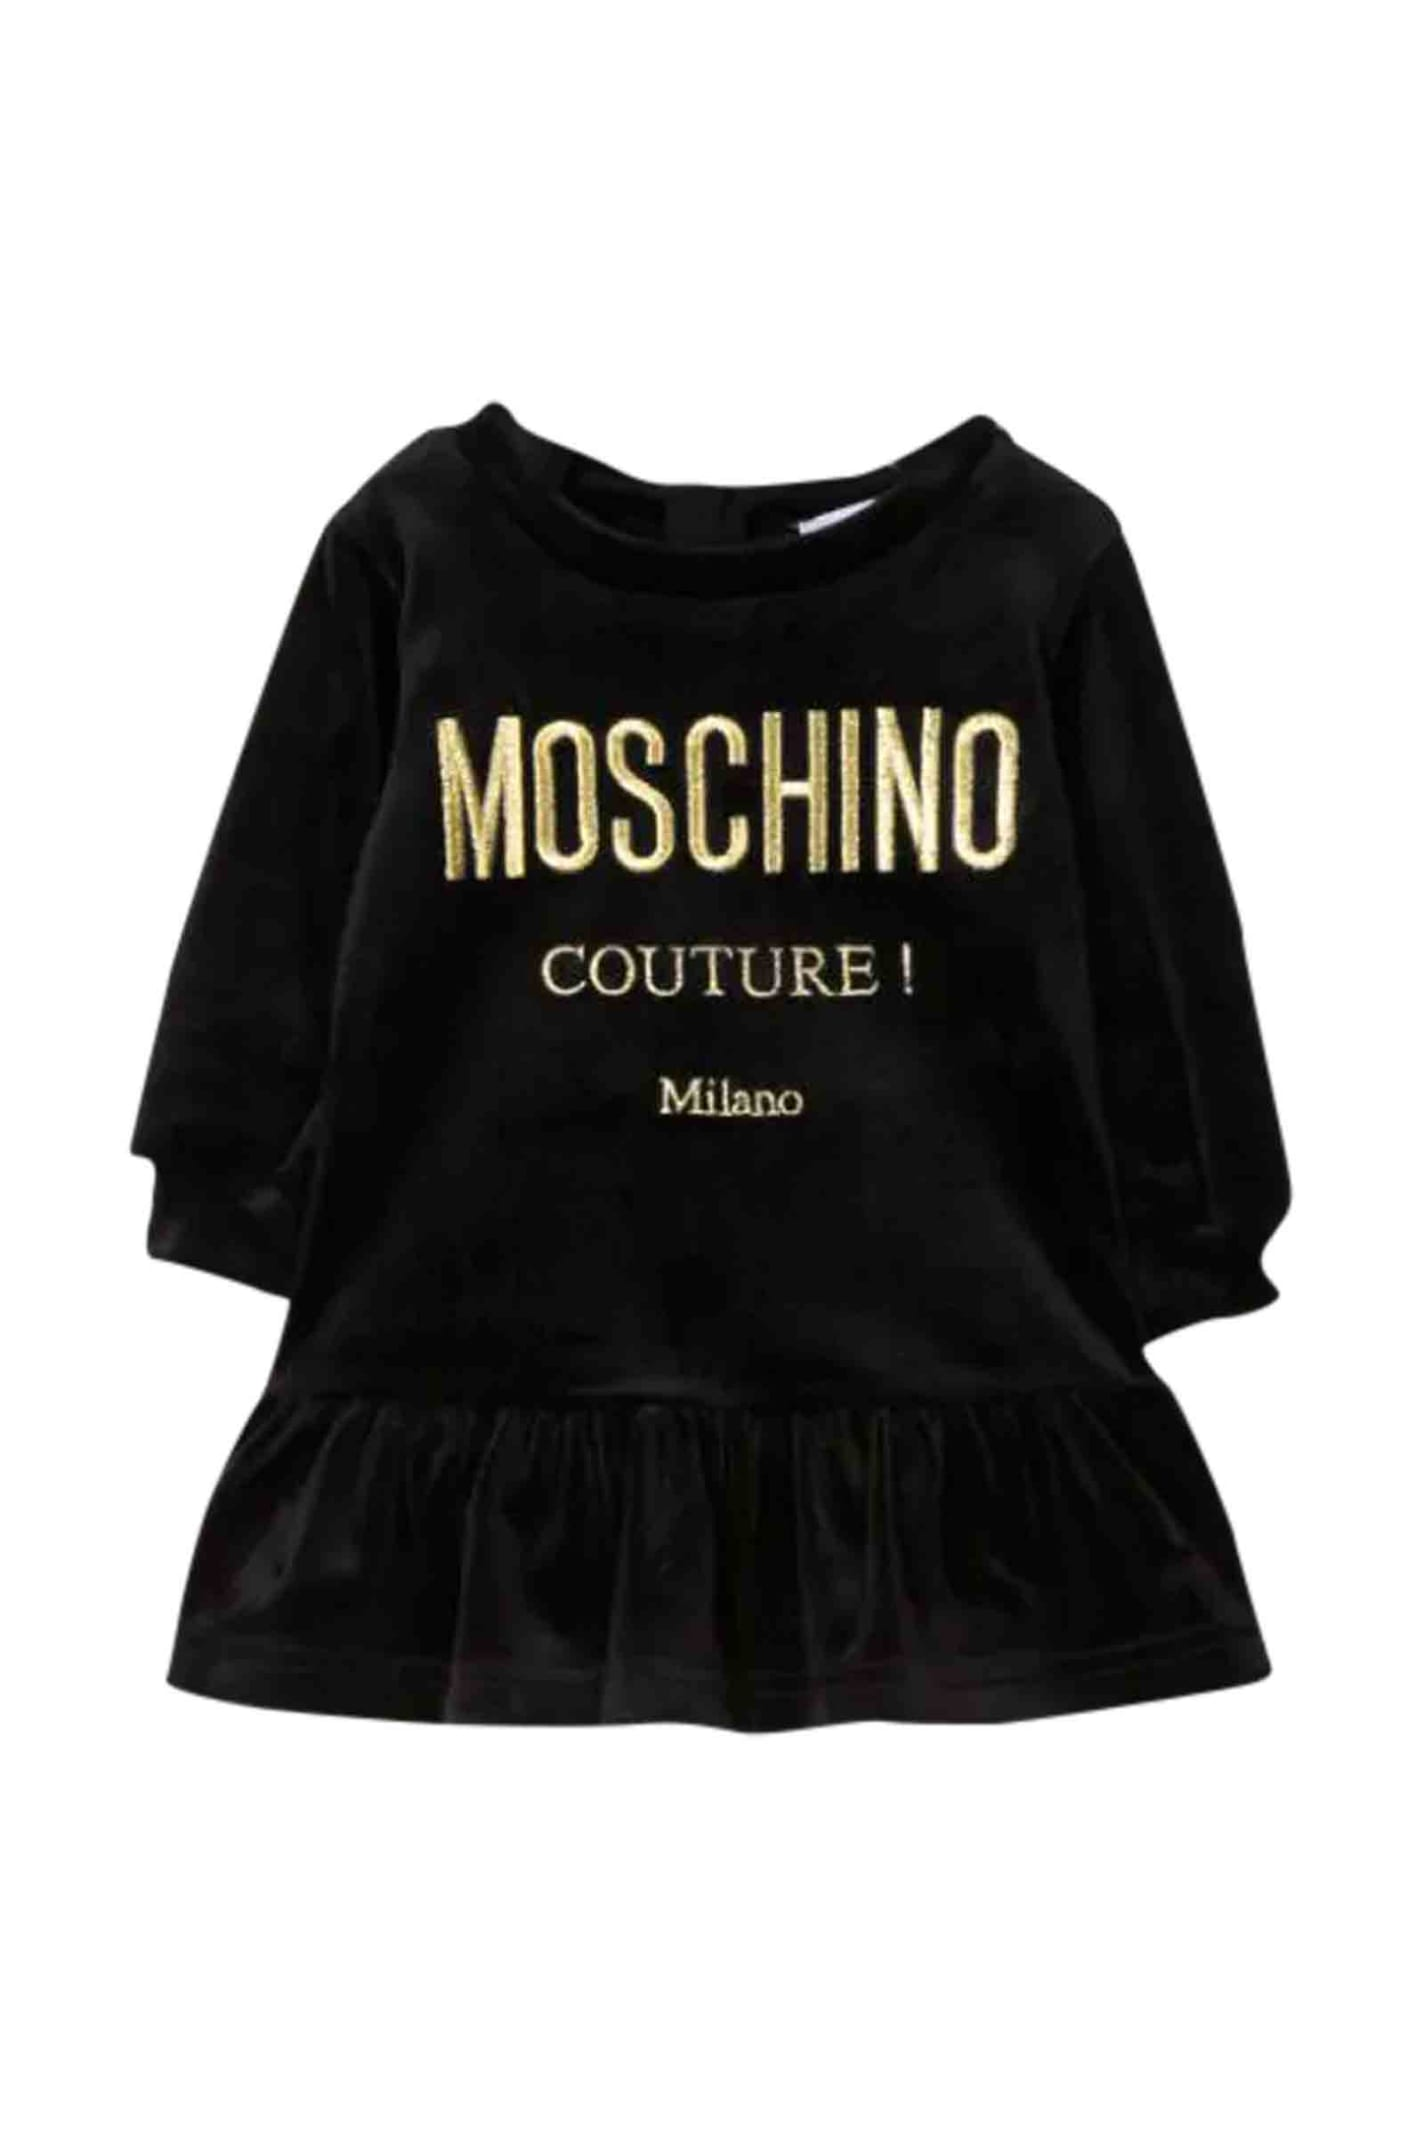 Moschino Embroidery Dress